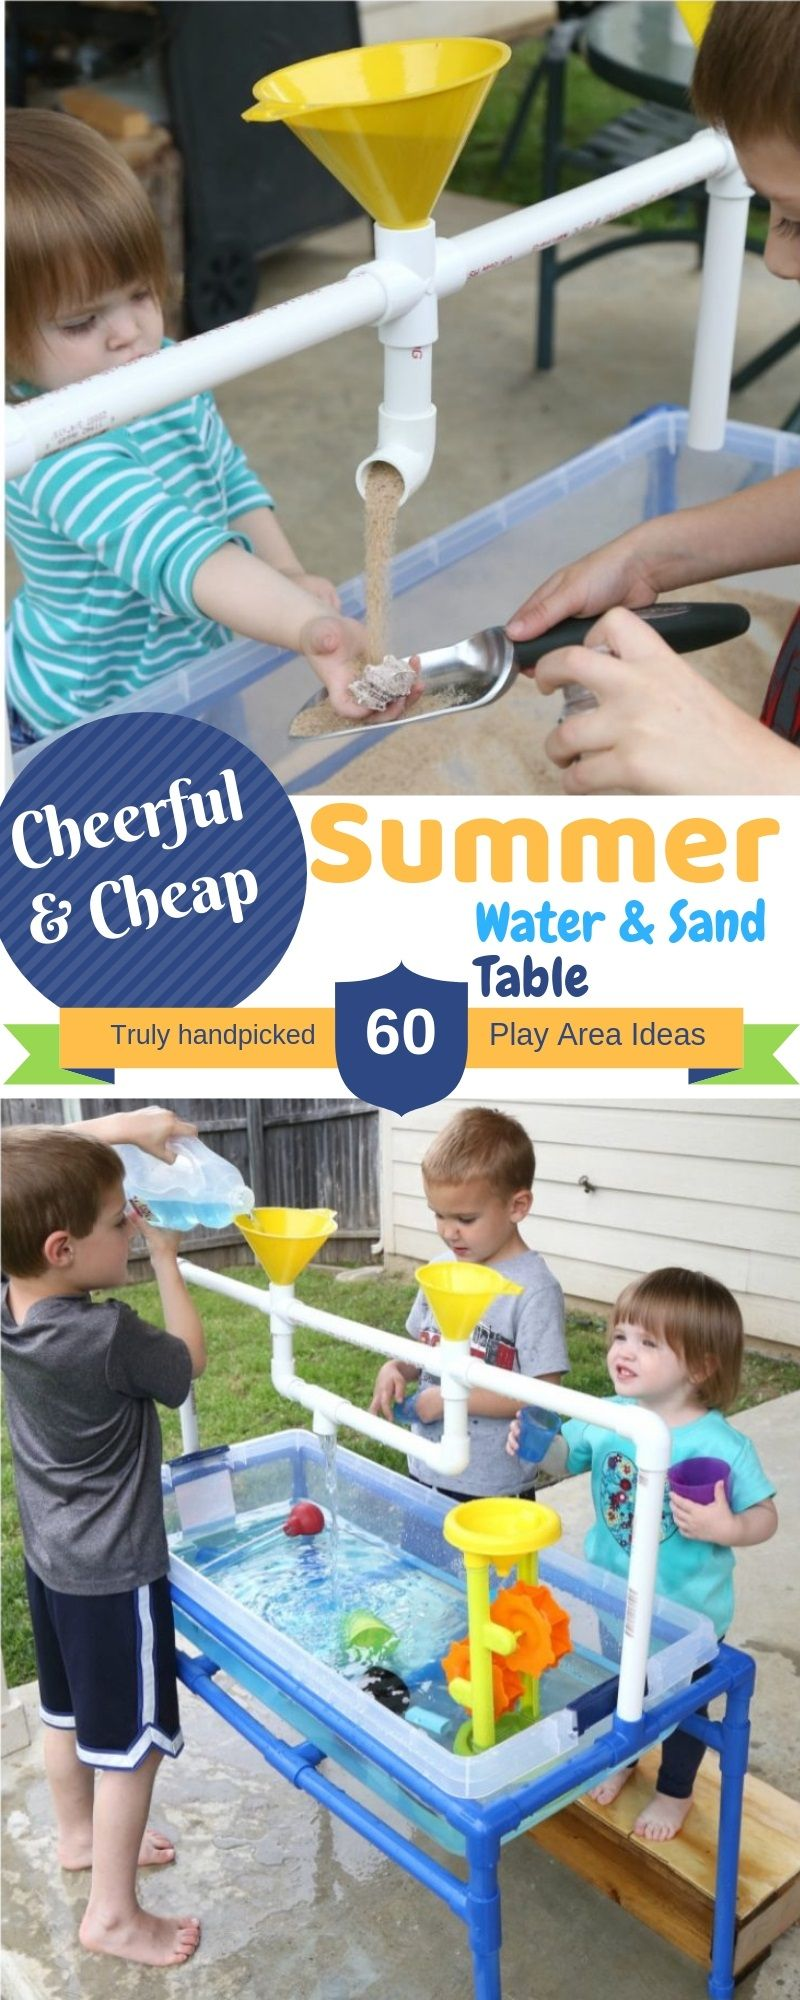 DIY Inexpensive Summer Water & Sand Table for Kids images